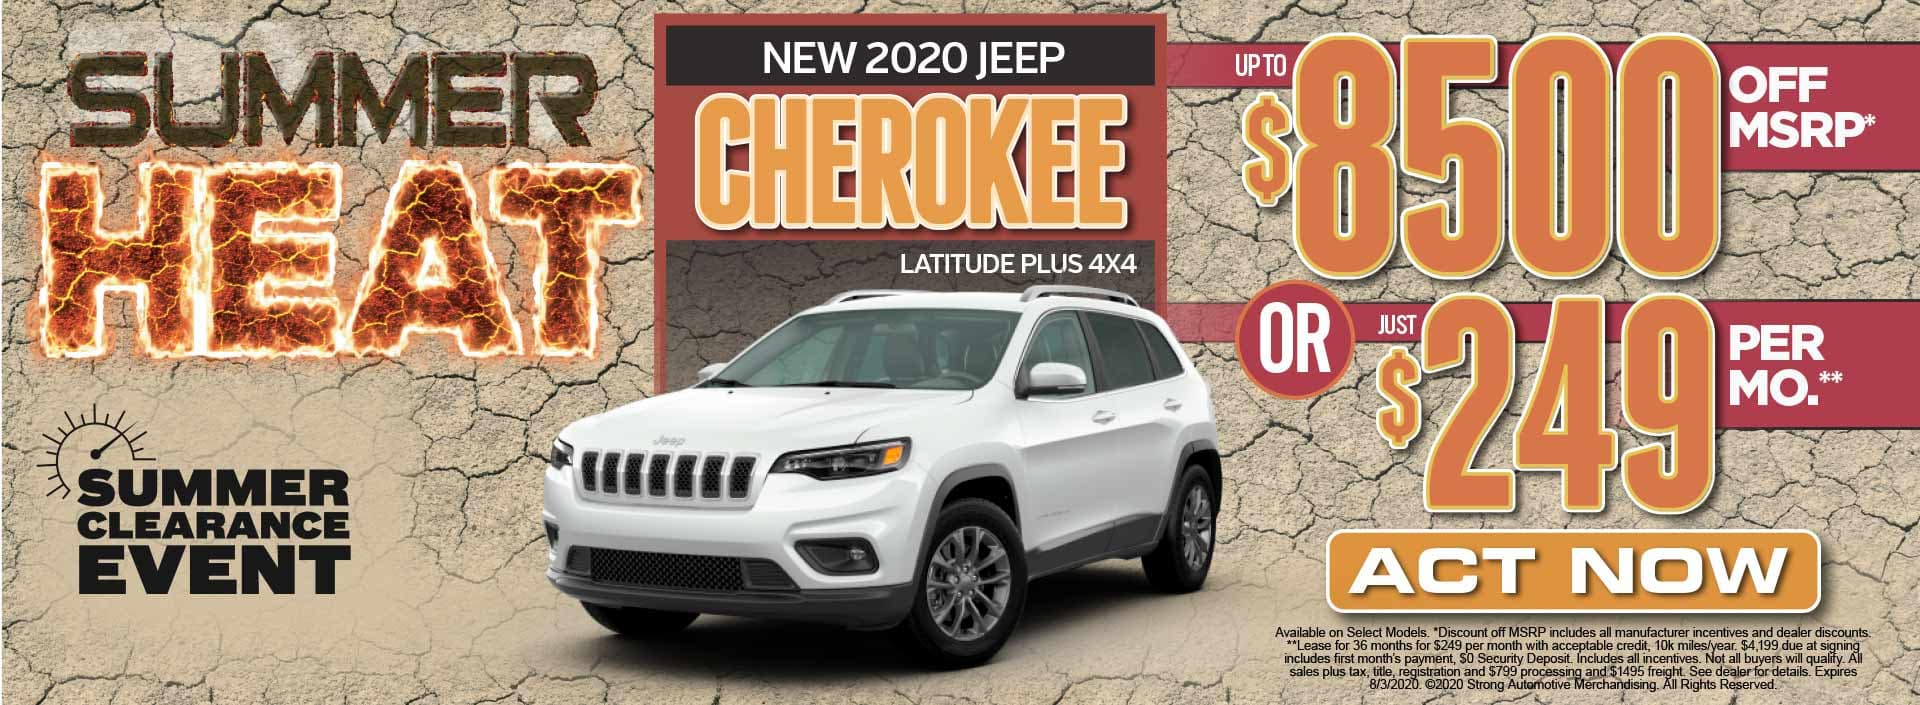 New 2020 Jeep Cherokee up to $8500 Off MSRP* Act Now